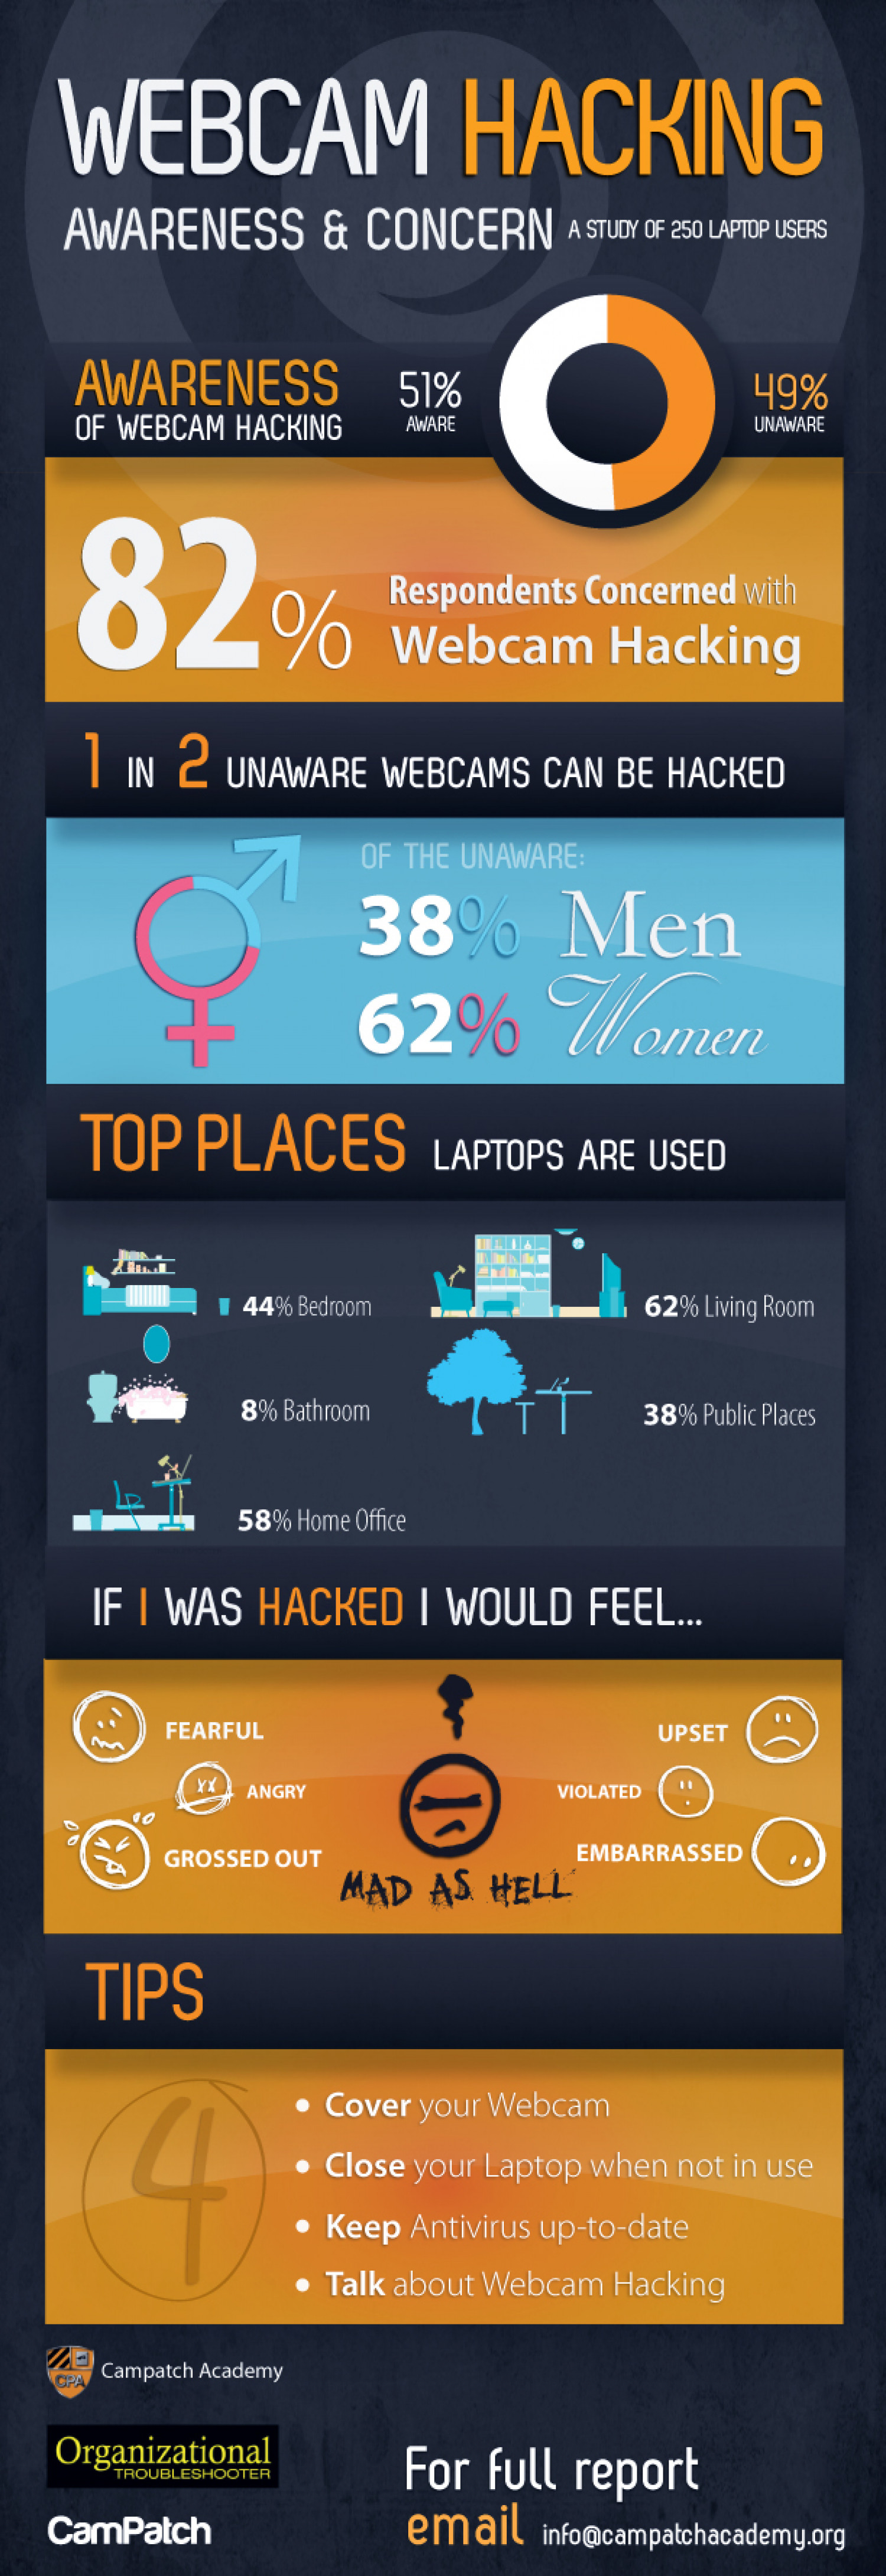 Awareness & Concern of Webcam Hacking Infographic